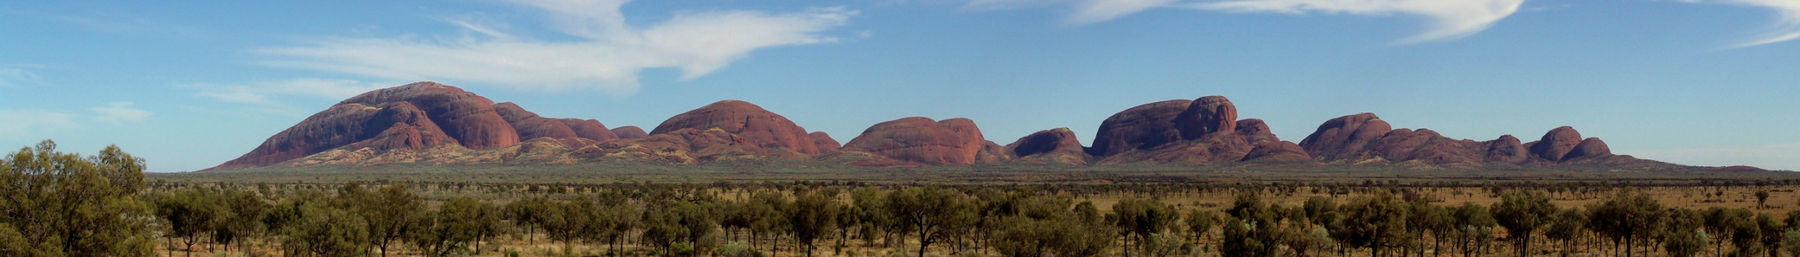 The 36 domes of Kata Tjuta, also known as Mount Olga